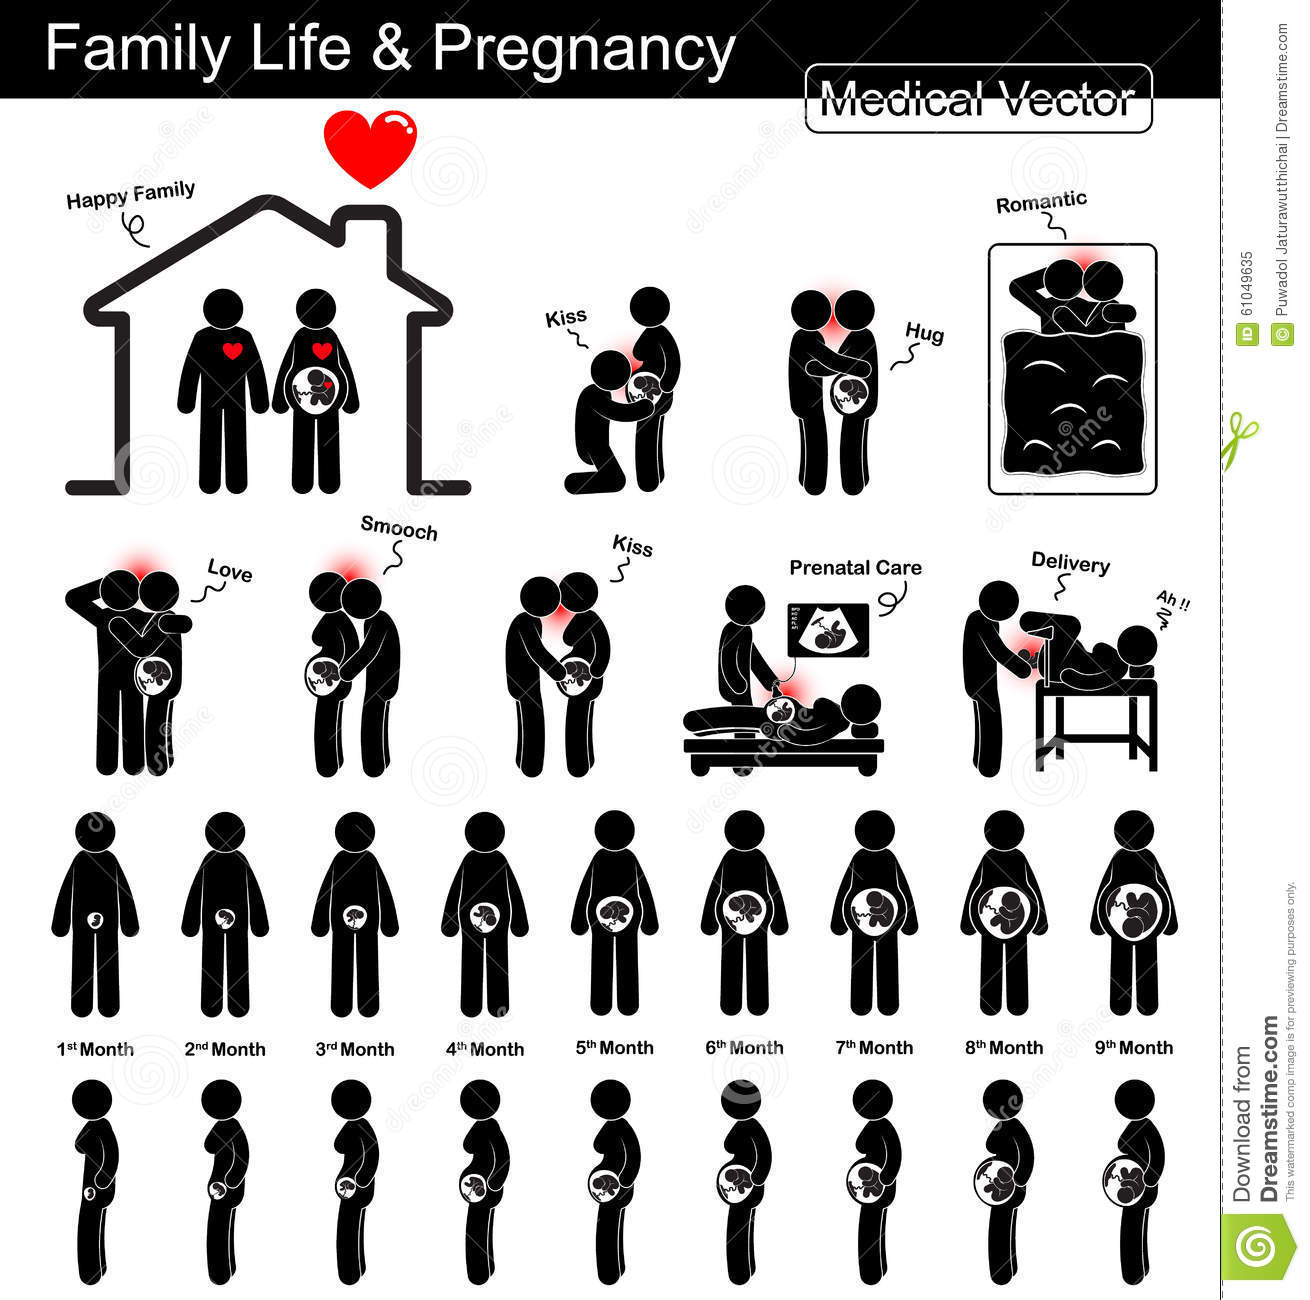 Family Life During Pregnancy And Fetal Development